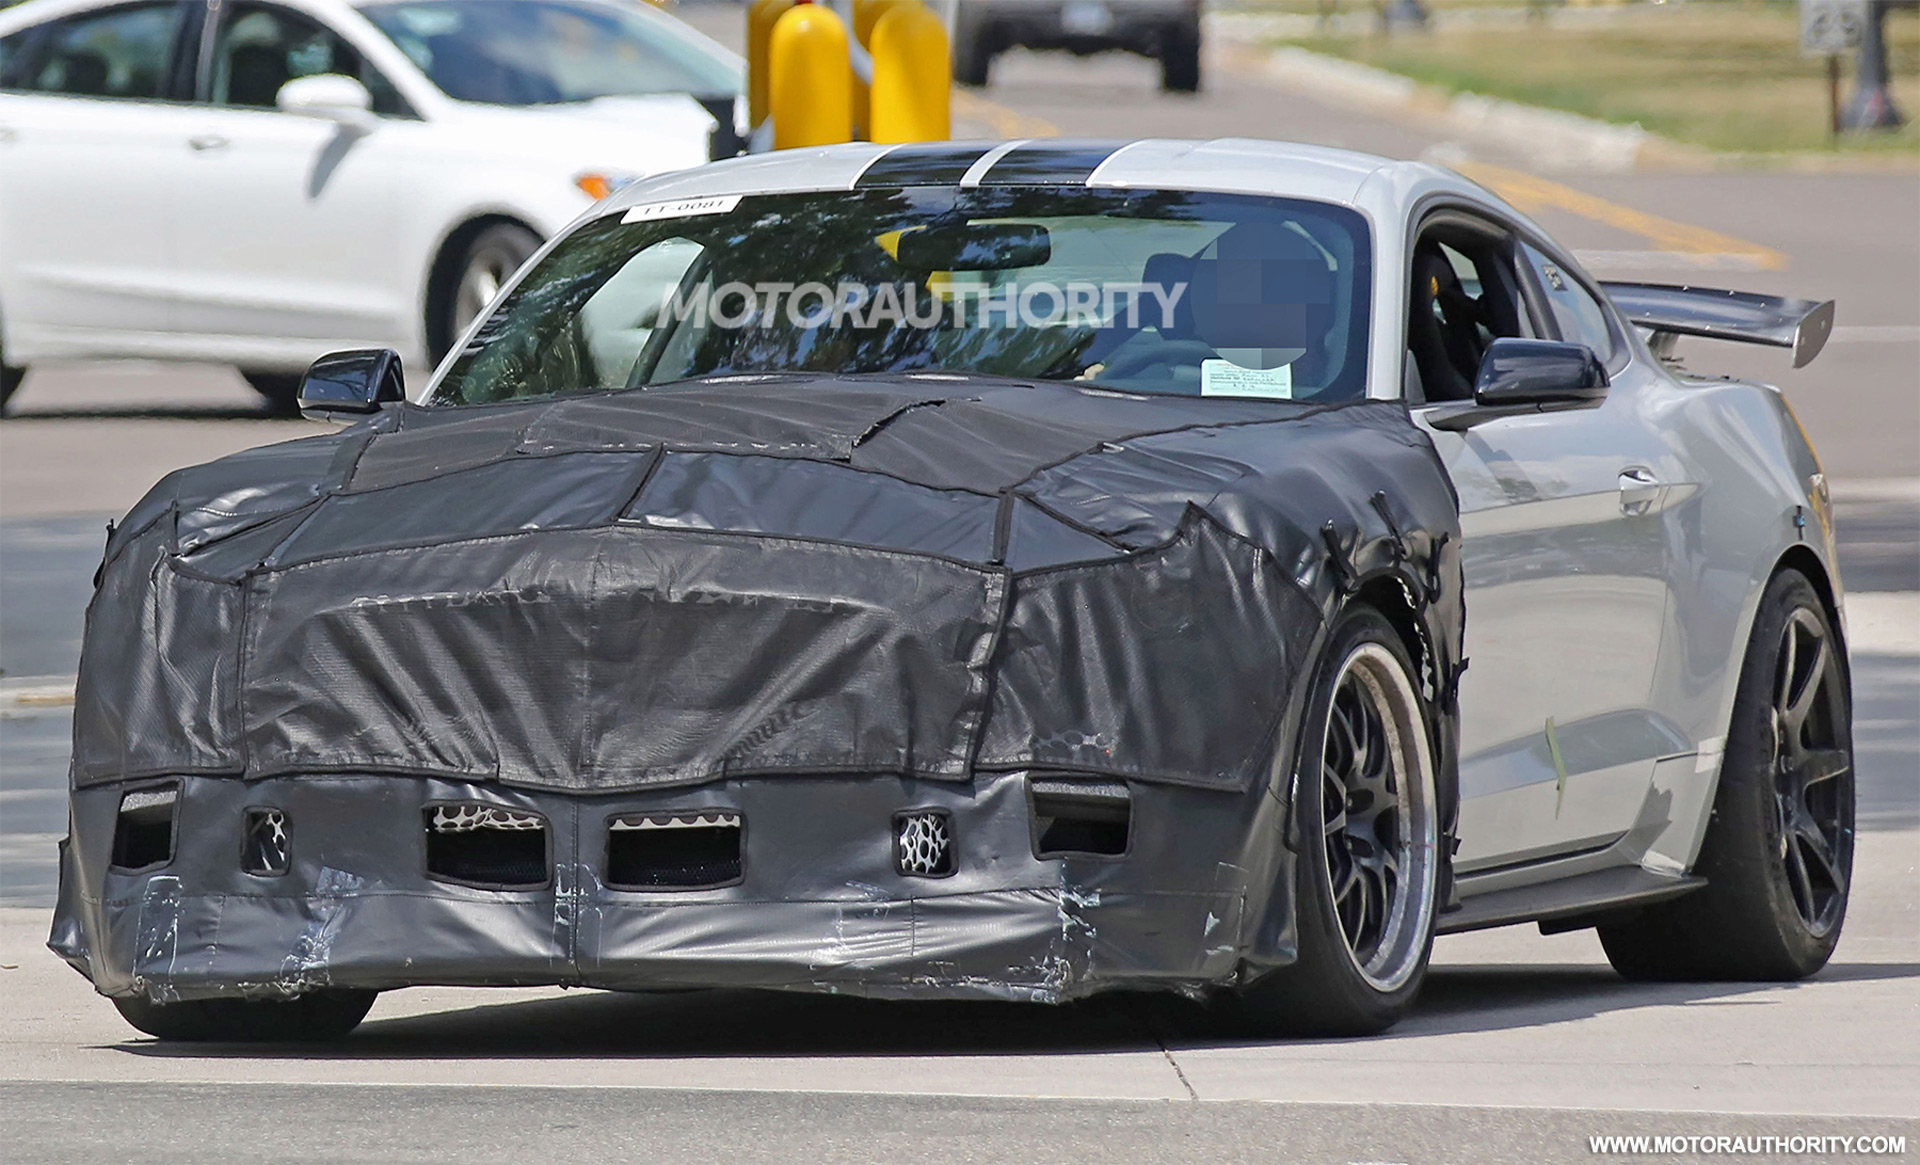 20 A 2020 The Spy Shots Ford Mustang Svt Gt 500 Performance and New Engine